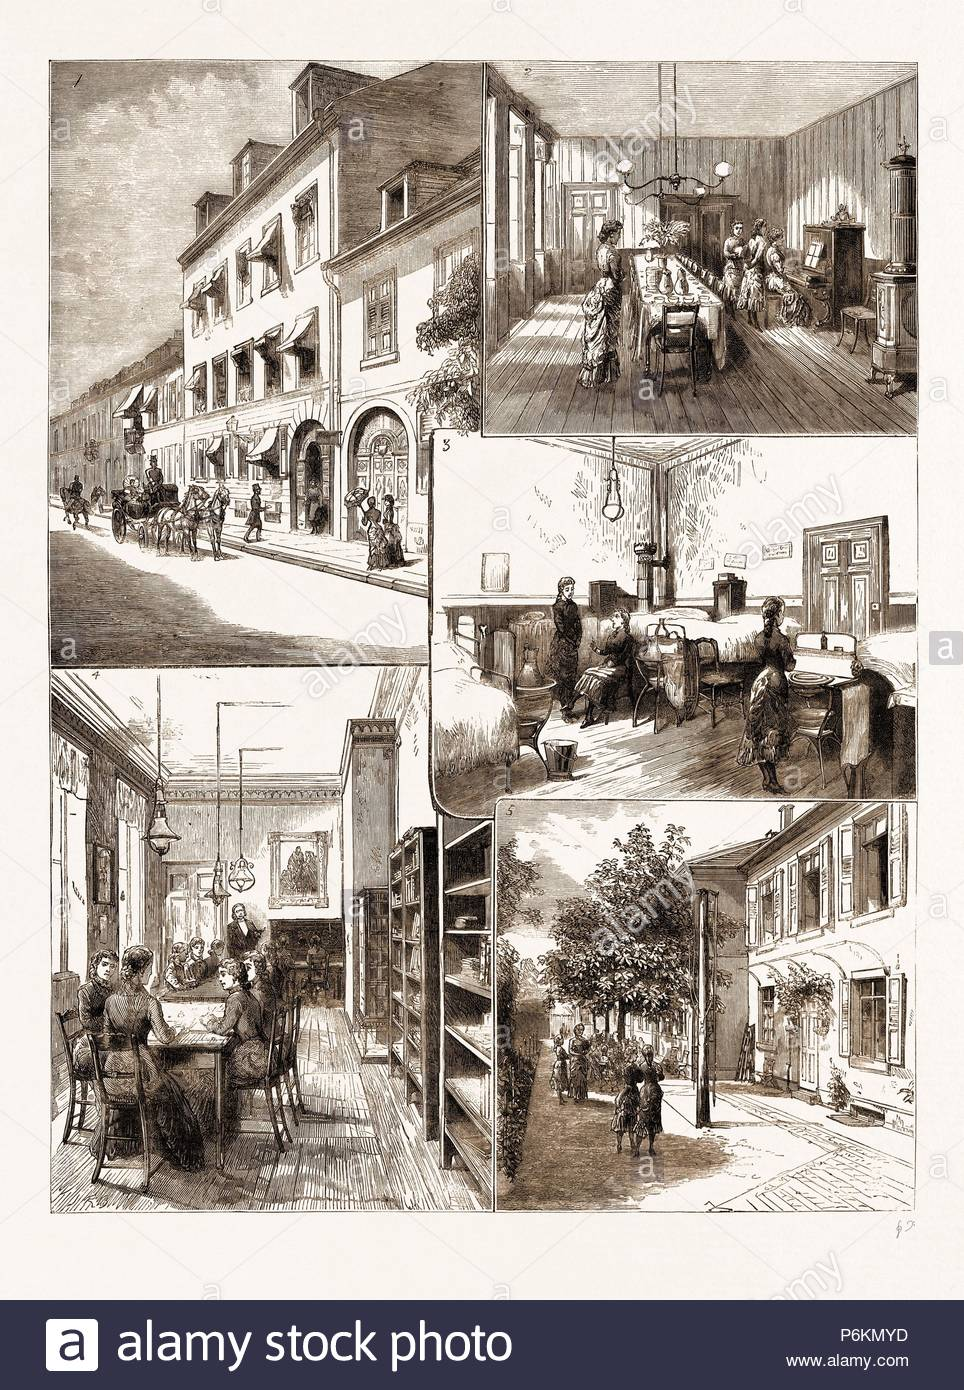 THE VICTORIA SCHOOL FOR GIRLS, CARLSRUHE, UNDER THE DIRECTION OF H.R.H. THE GRAND DUCHESS OF BADEN, GERMANY, 1883: 1. The Exterior of the Victoria School. 2. The Dining Room. 3. Dormitory. 4. A School Room. 5. The Garden. - Stock Image